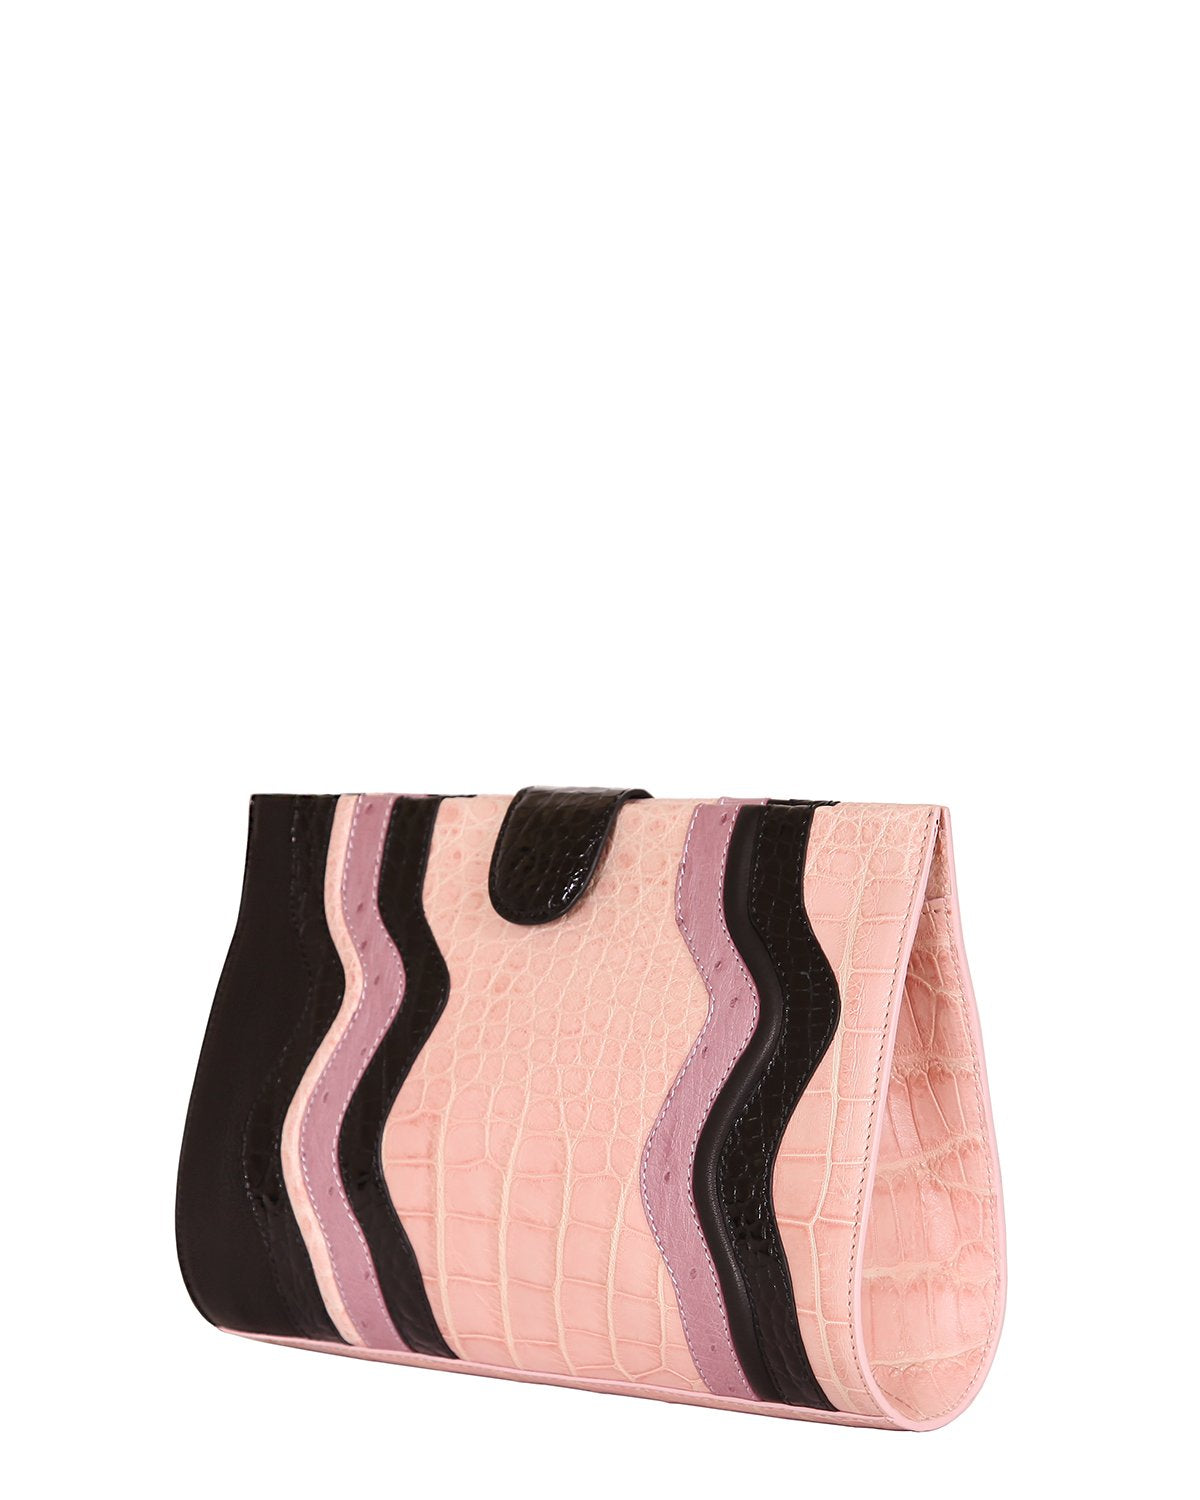 One of a Kind Beautifully Handcrafted Clutch in Genuine American Alligator Blush pink with Black and Lavender Trim Angle View Side Gusset in Blush Pink Alligator